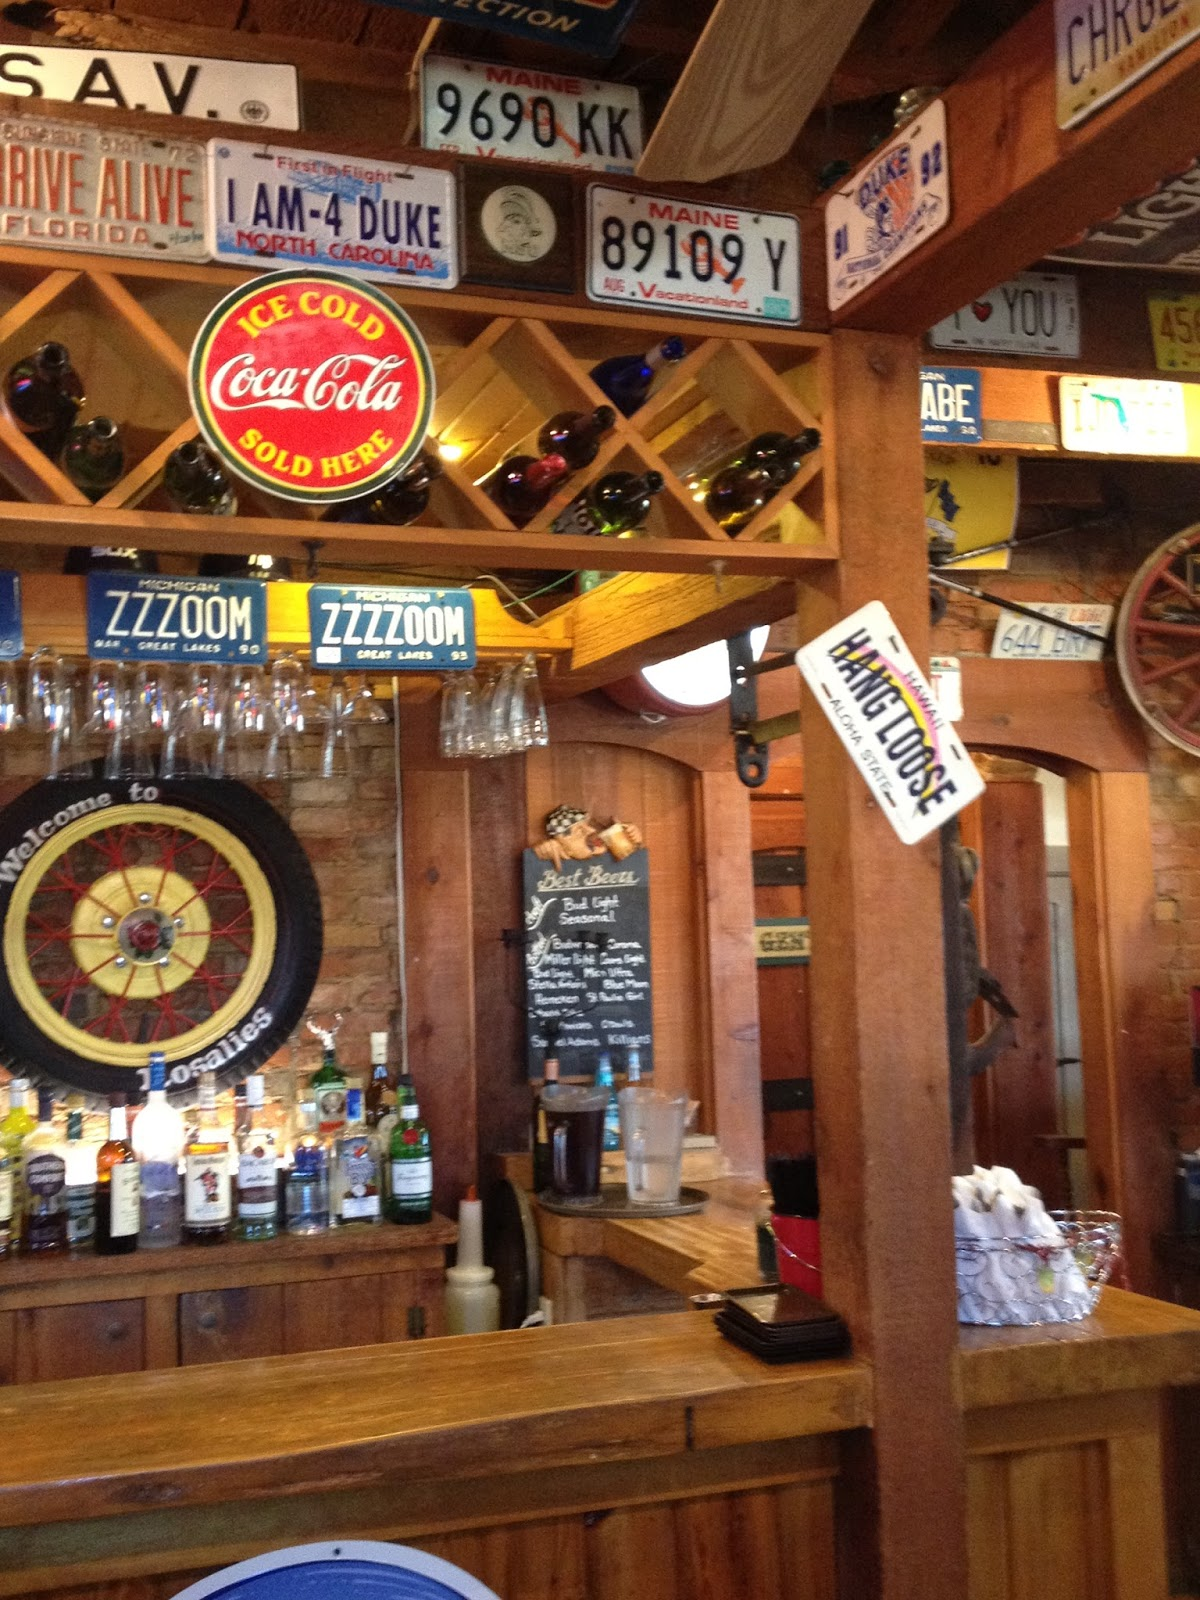 The Food Gets Served On A Pie Tin In Room Decorated With Automobile Memorabilia Vintage License Plates Dominate Walls And Ceiling Of Bar Area